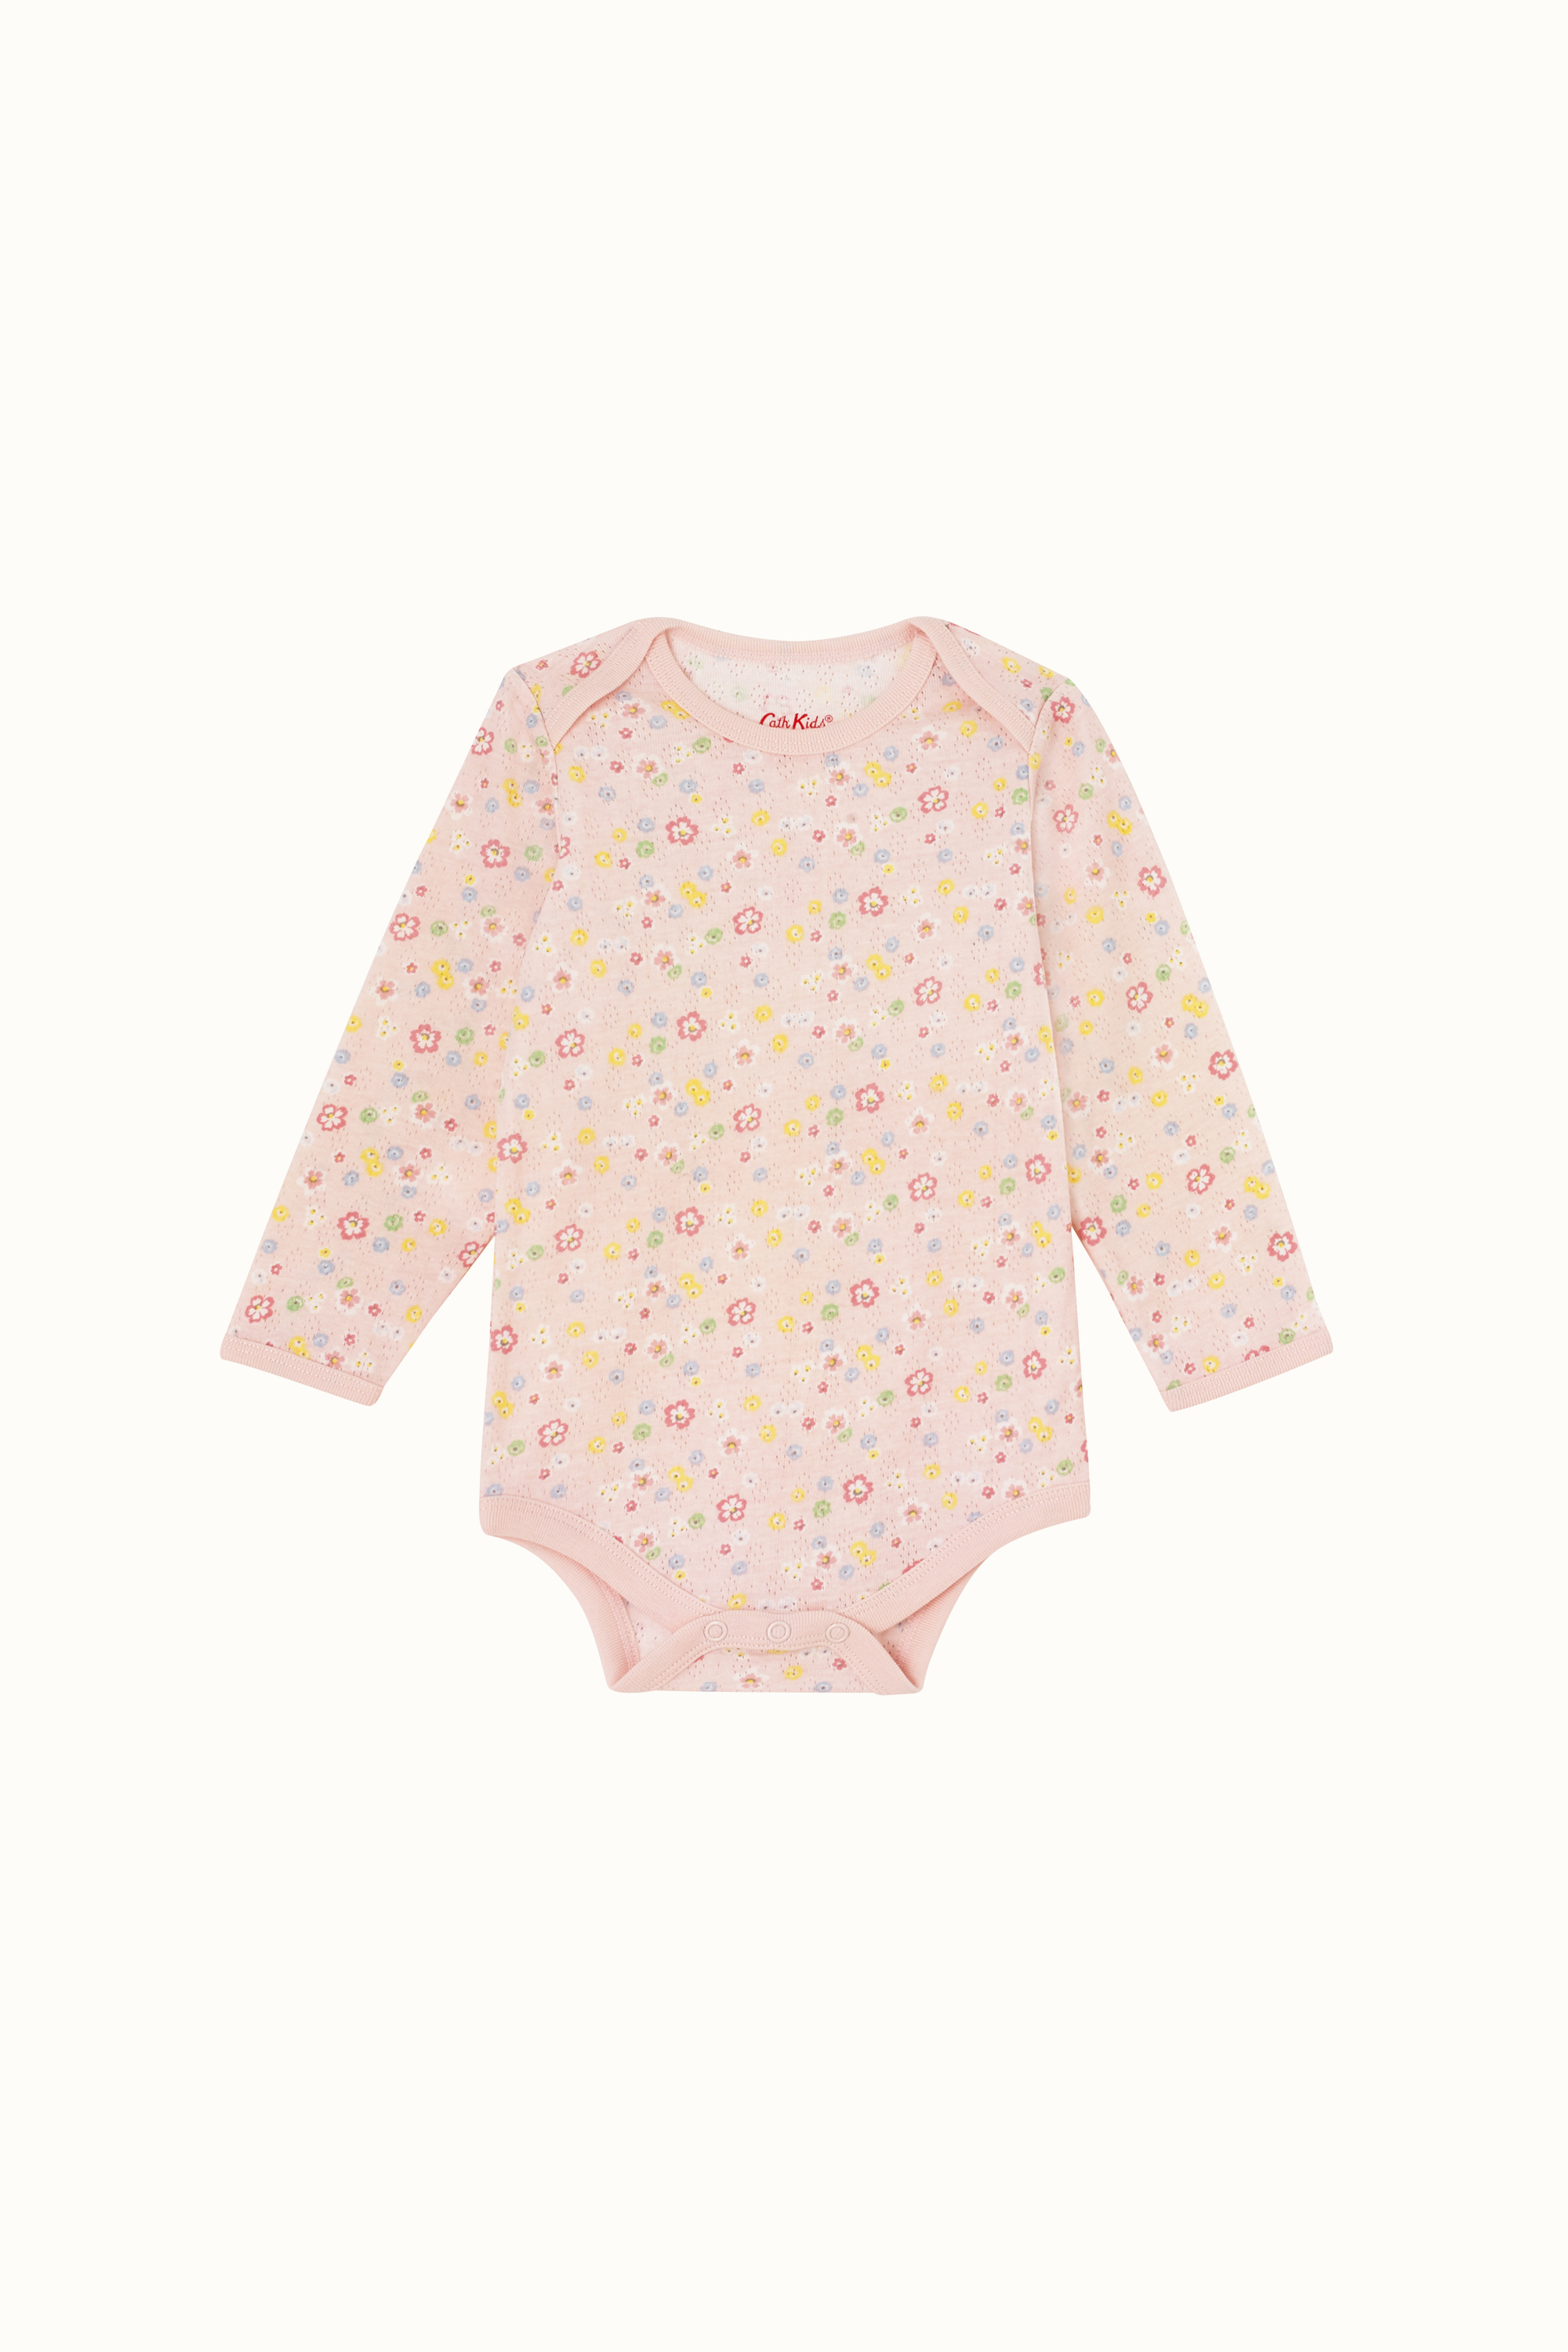 Cath Kidston Baby Ditsy Long Sleeve Envelope Neck Bodysuit in Pale Pink, 9-12 Mo